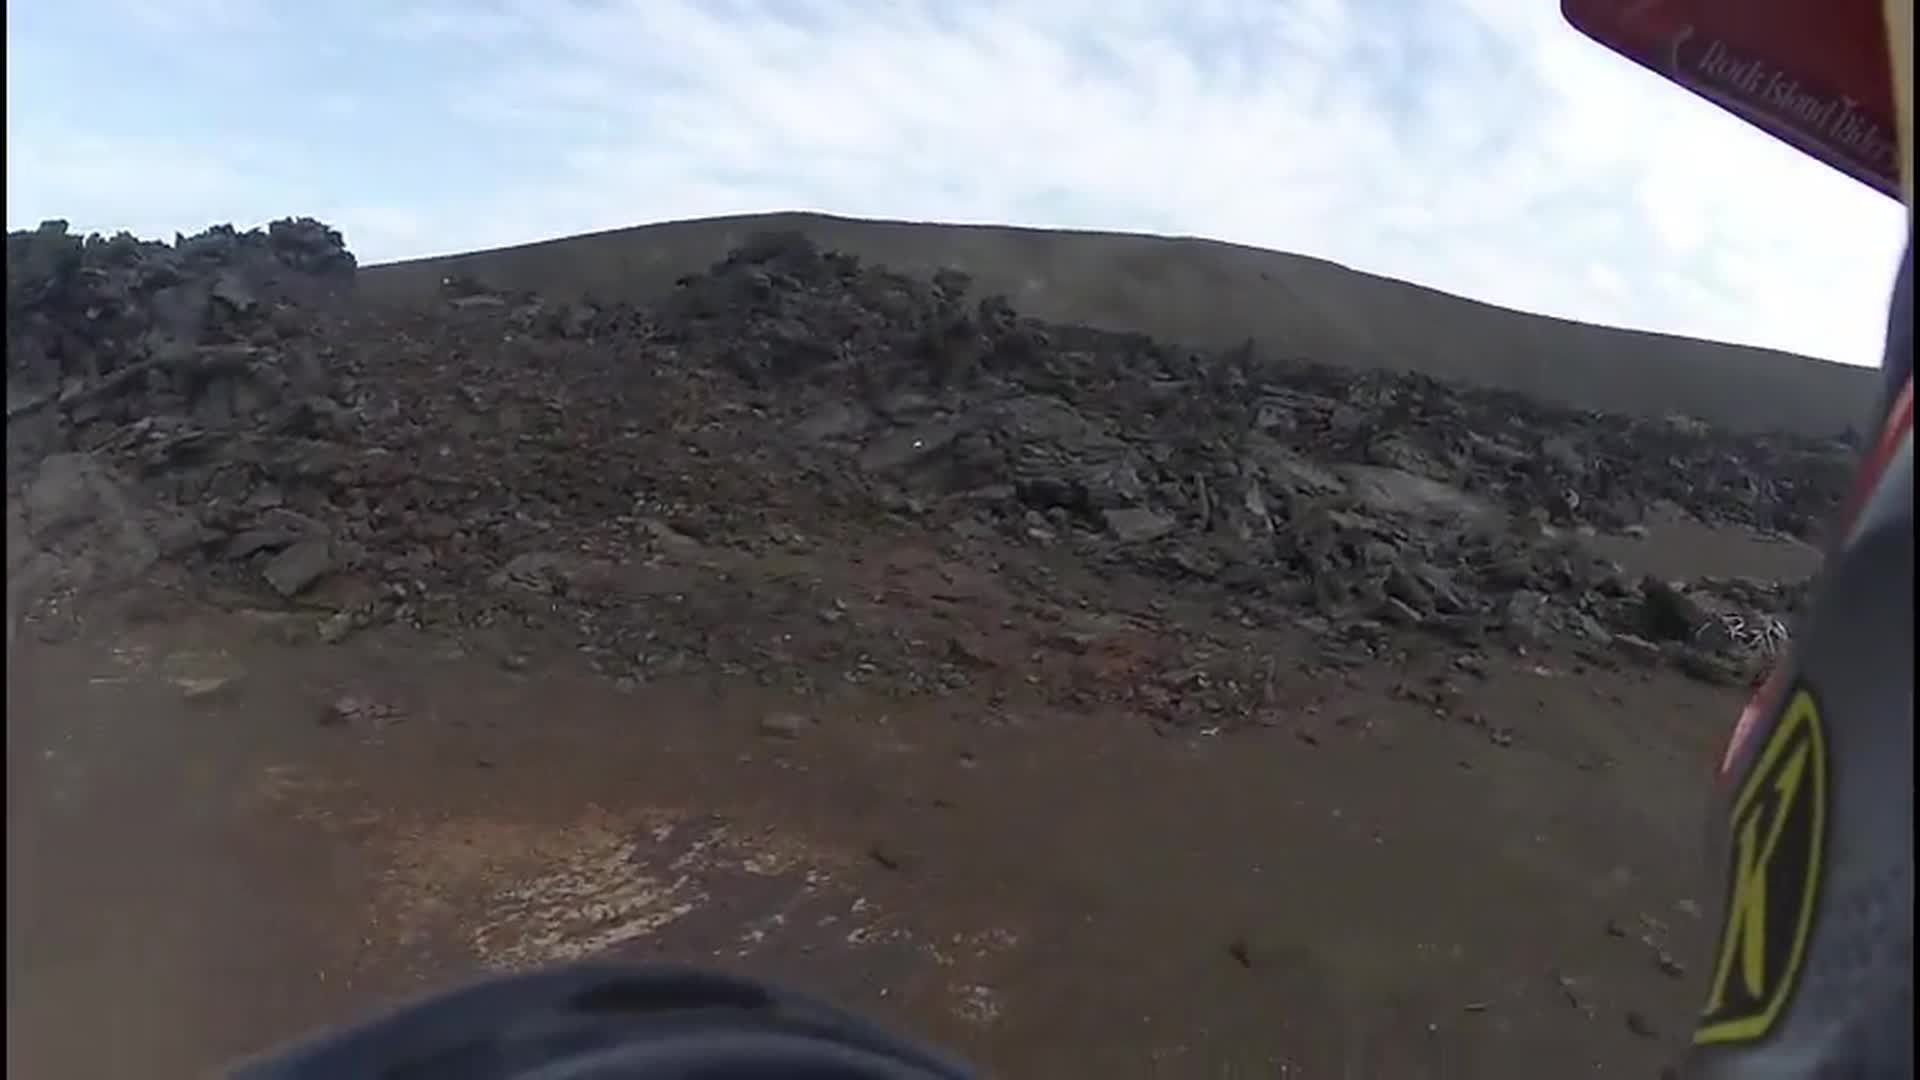 Riding around on a Lava pond